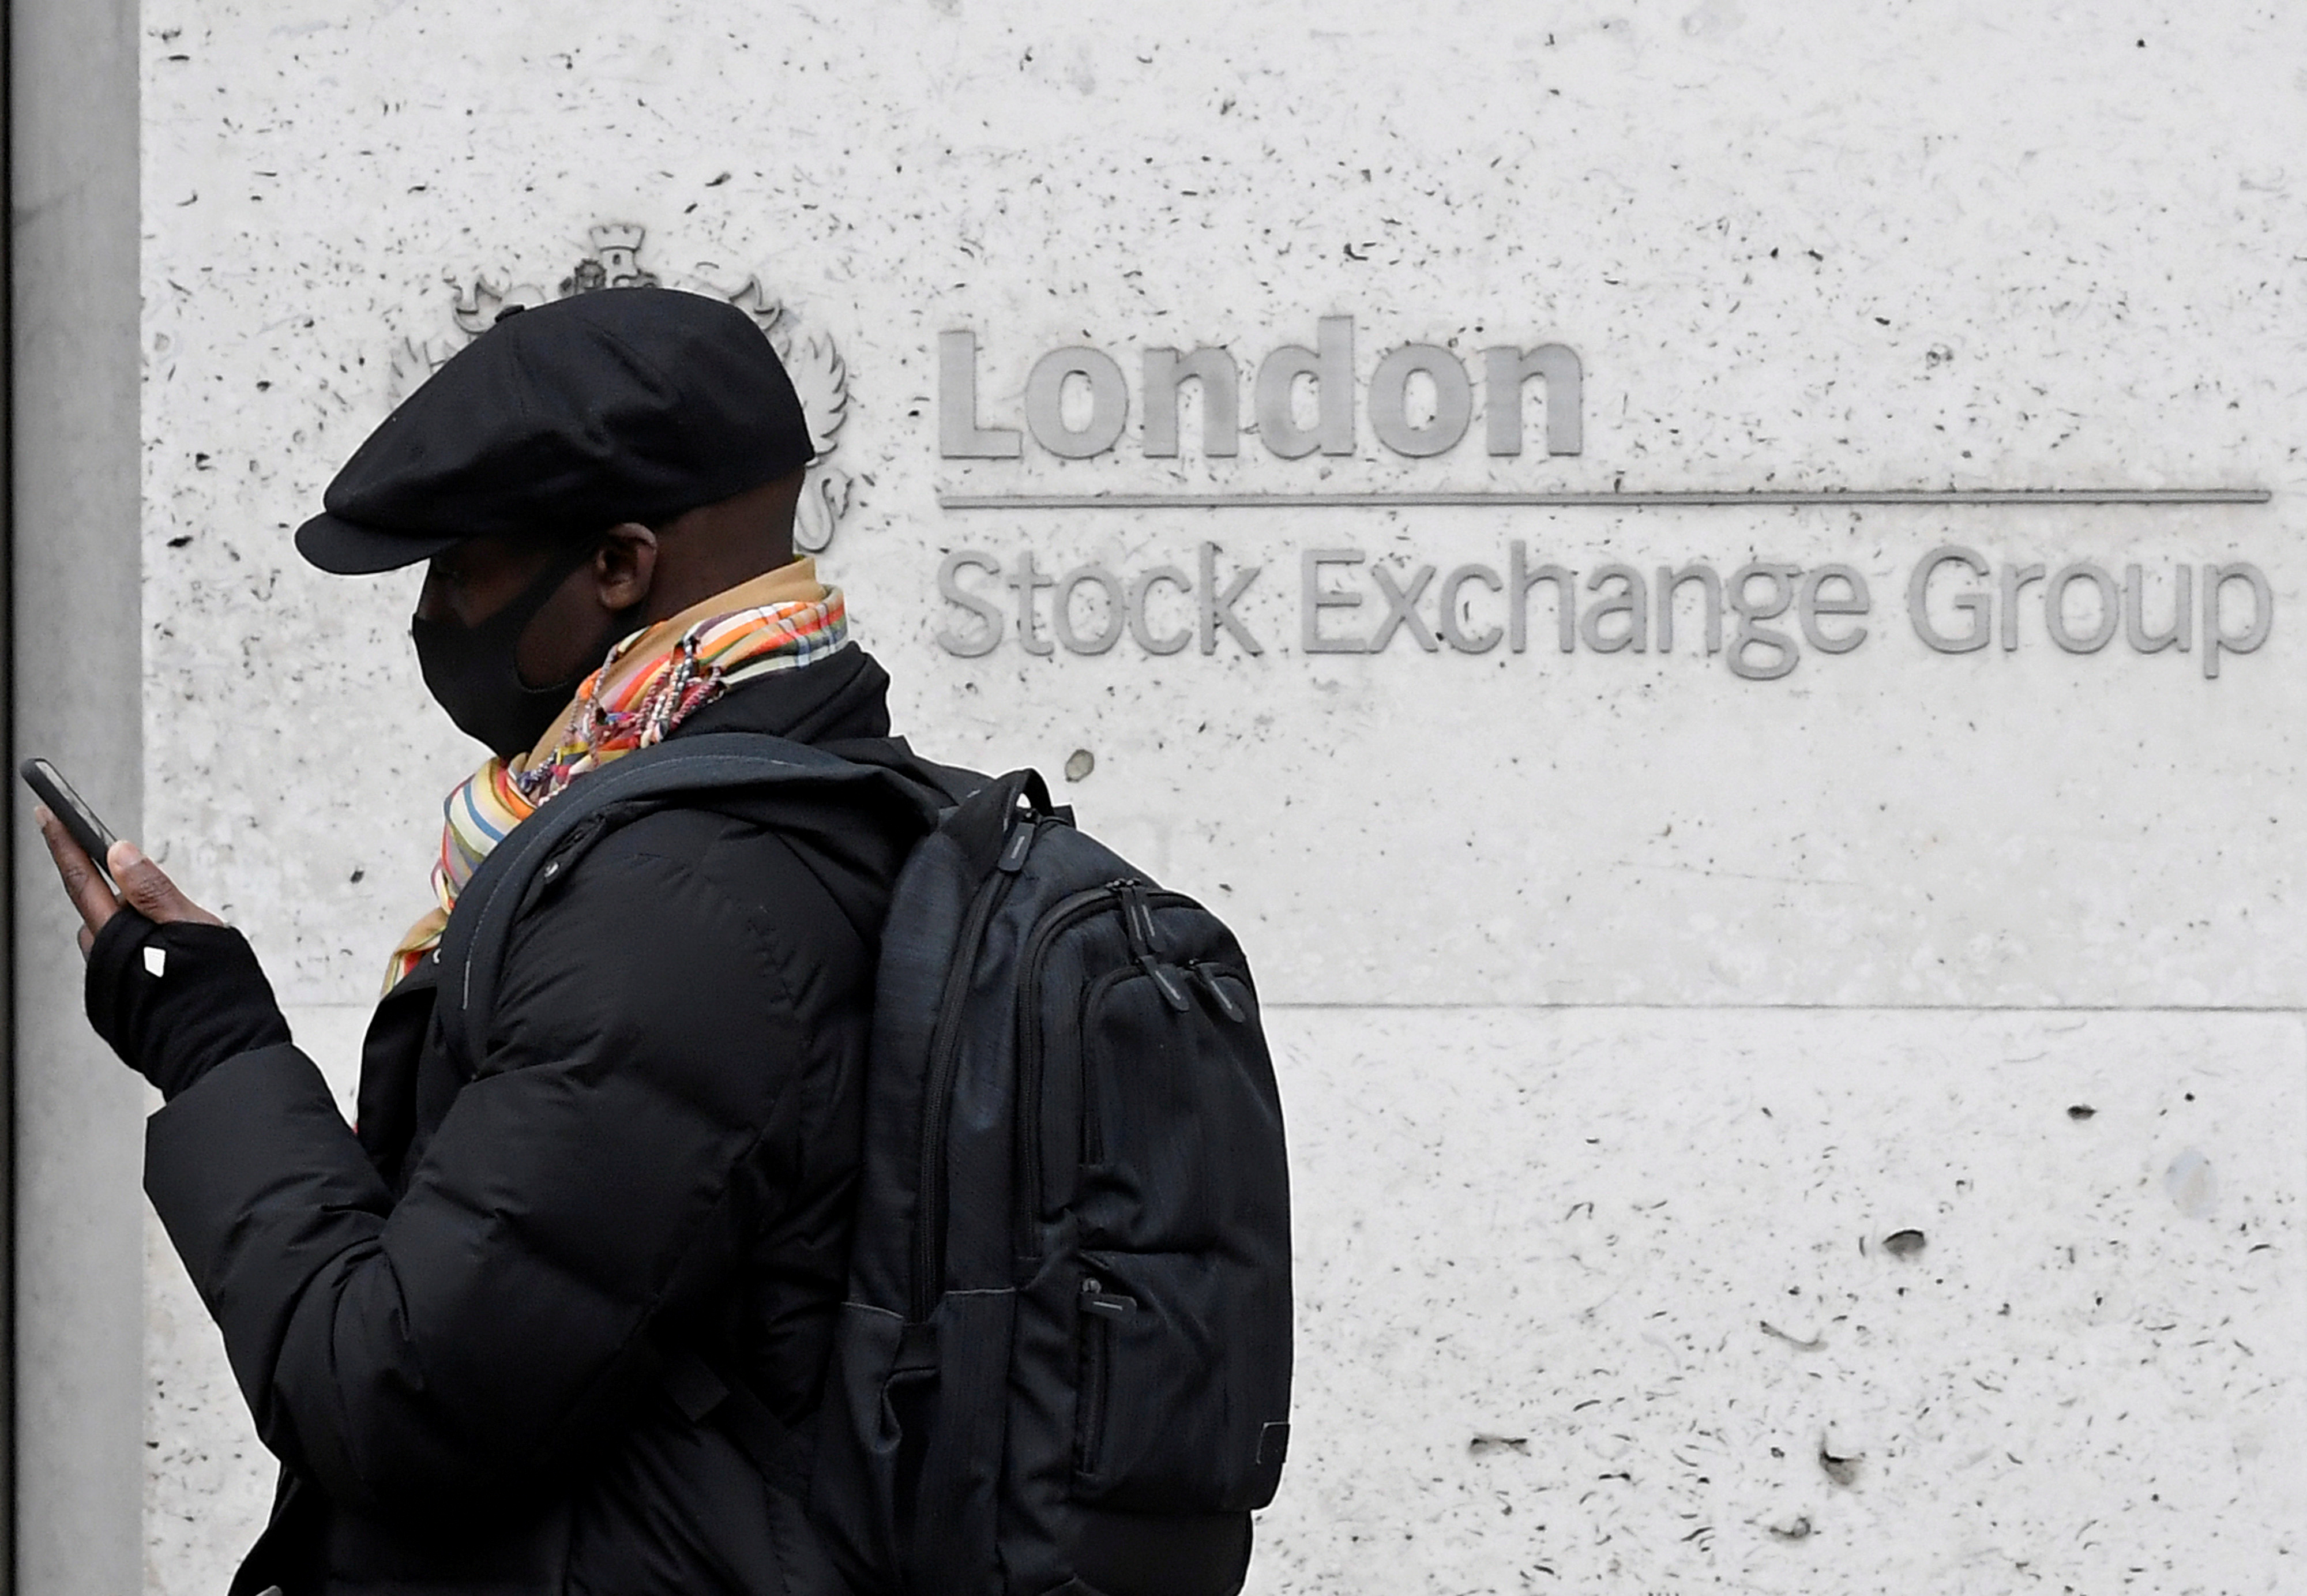 A man wearing a protective face mask walks past the London Stock Exchange Group building in the City of London financial district, whilst British stocks tumble as investors fear that the coronavirus outbreak could stall the global economy, in London, Britain, March 9, 2020. REUTERS/Toby Melville/File Photo